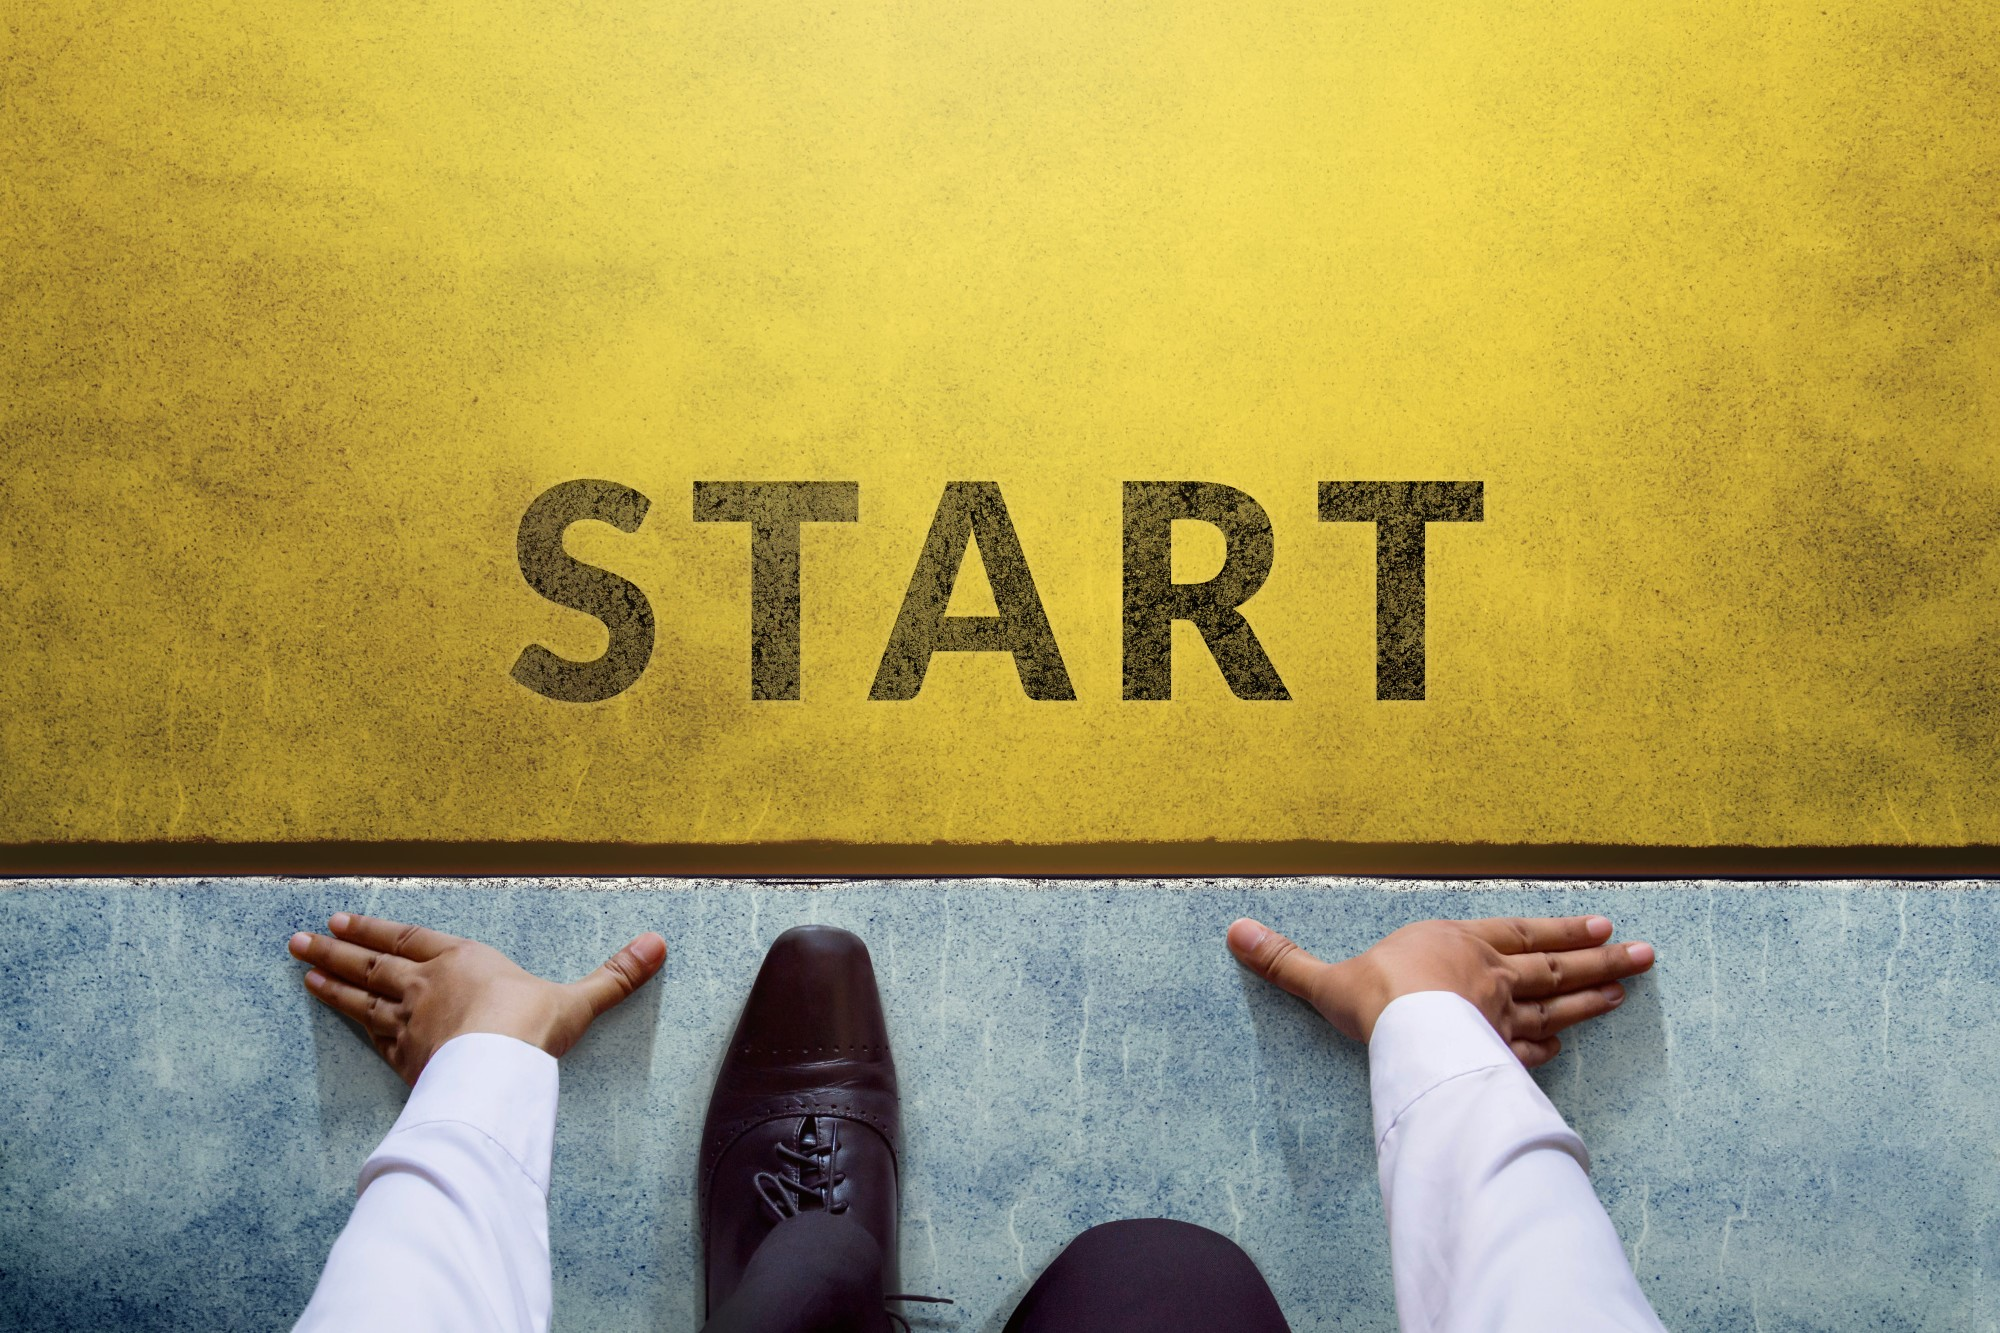 5 Key Things You Need to Do Before Starting a Business